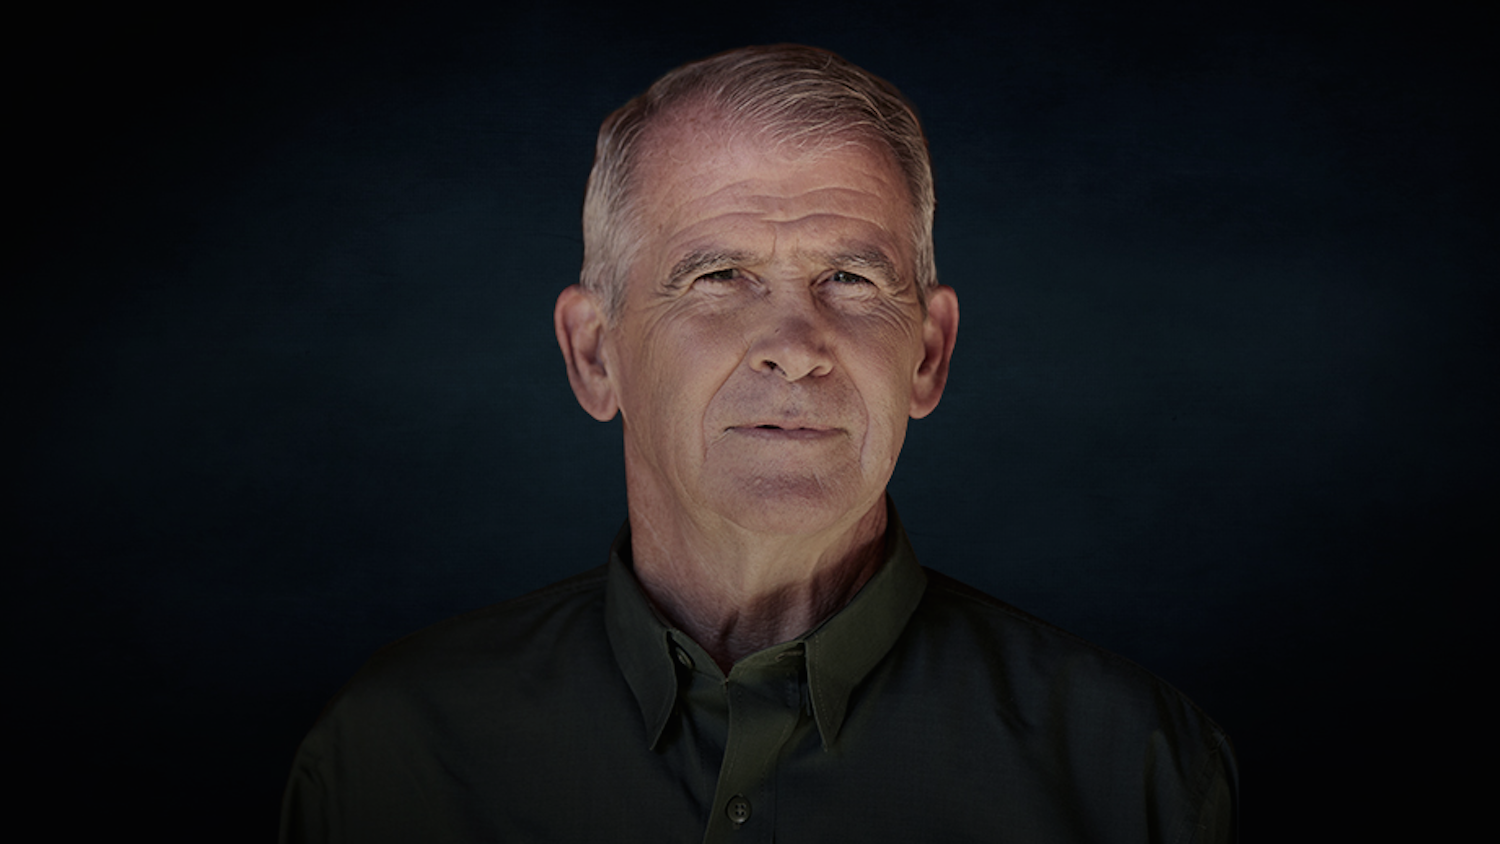 Lt. Colonel Oliver North Poised to Become NRA President